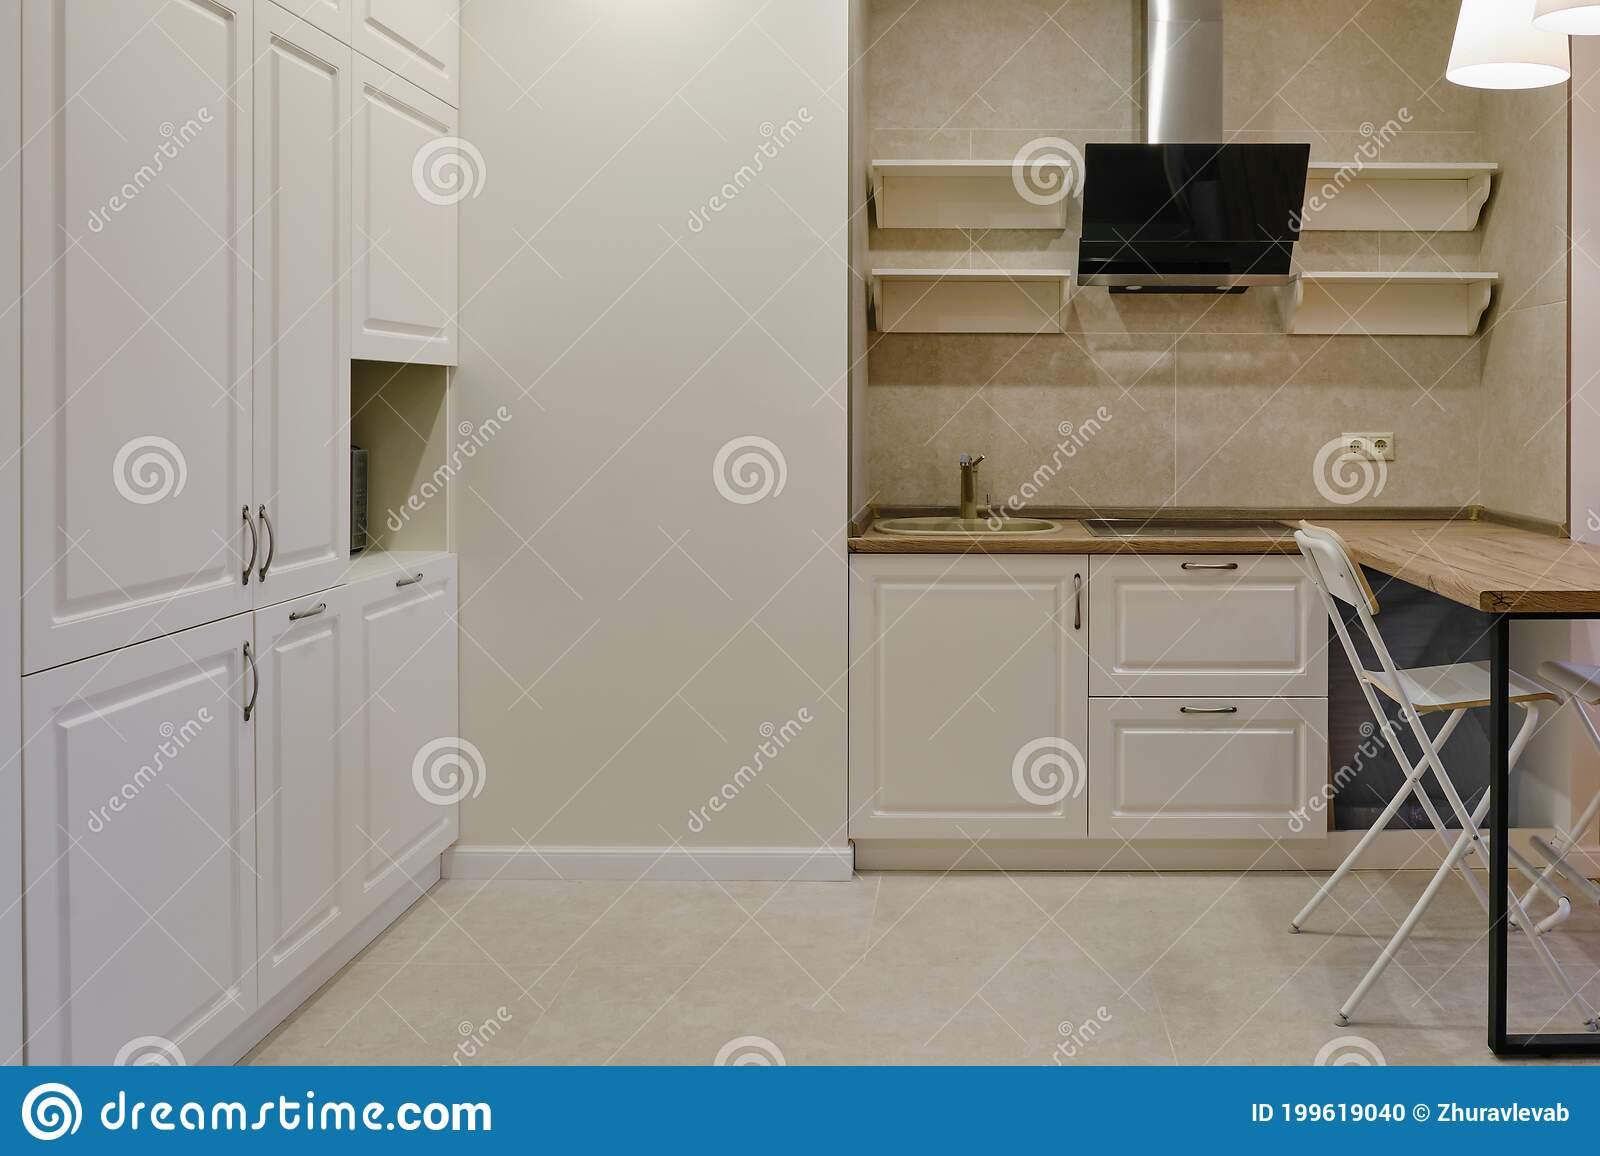 New Modern Kitchen With A Bar Counter In White And Beige Colors Kitchen Furniture In The Style Of French Provence Stock Photo Image Of Copy Decor 199619040